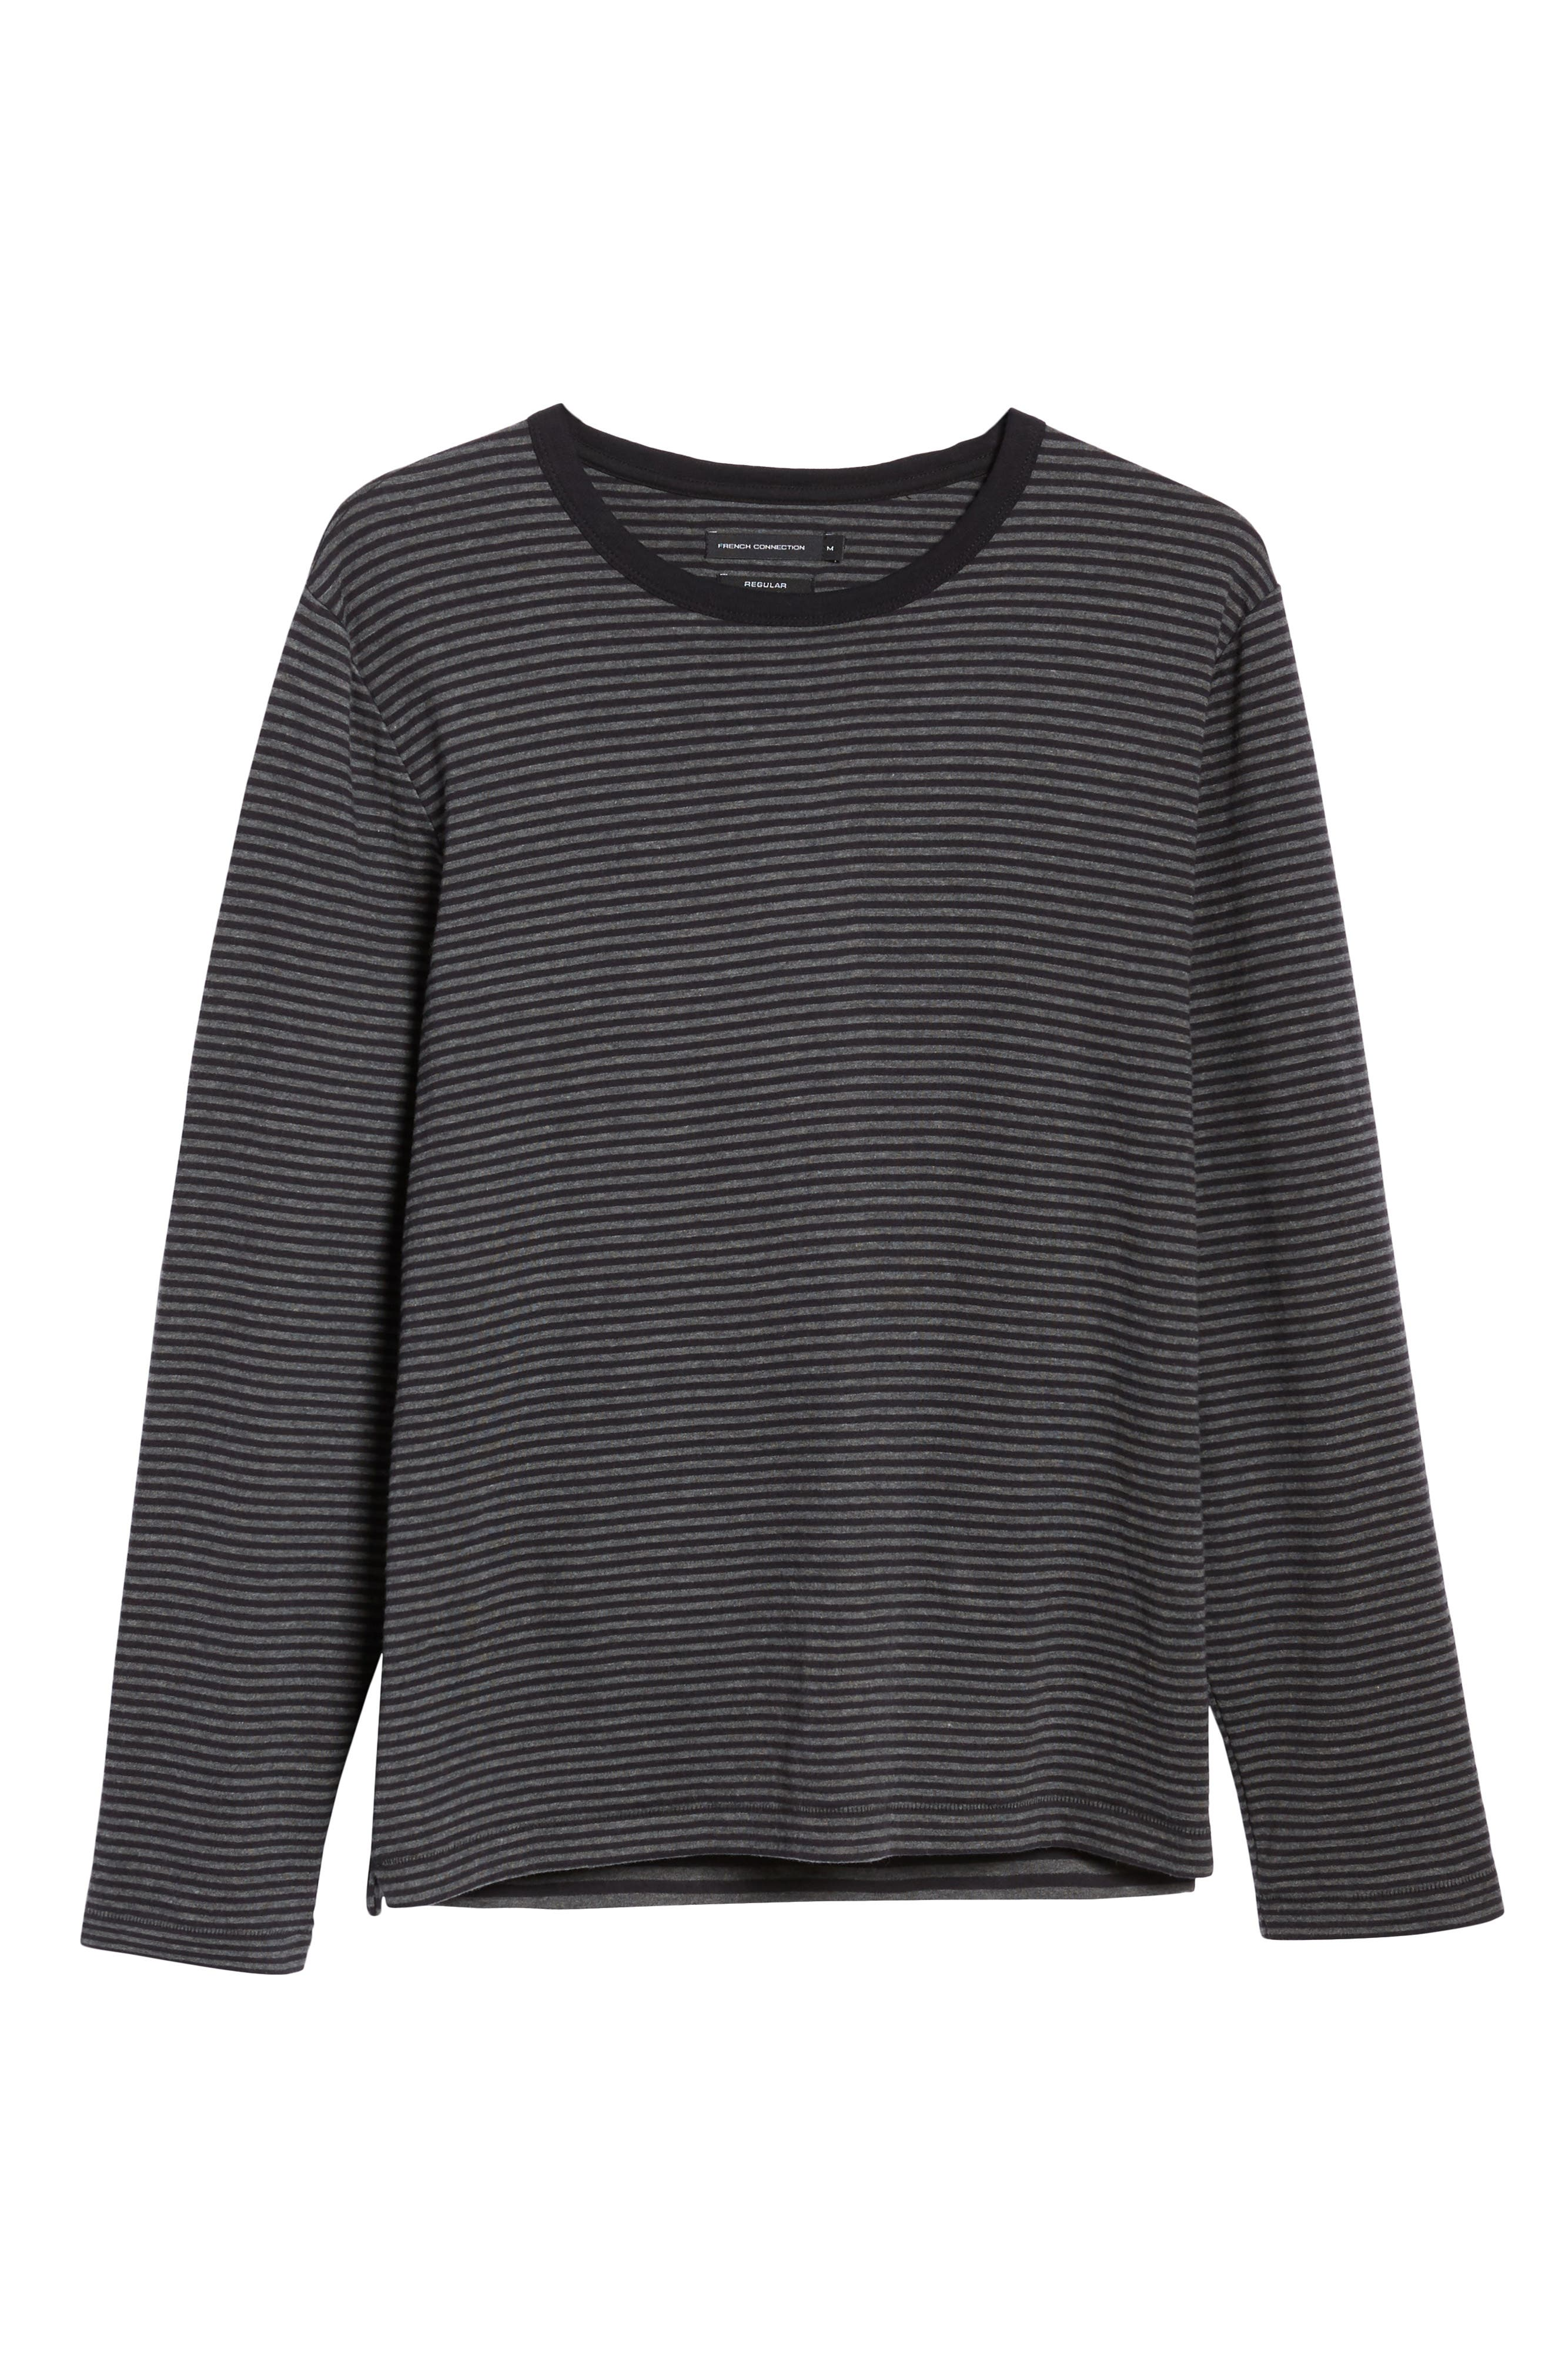 Alternative Stripe Long Sleeve T-Shirt,                             Alternate thumbnail 6, color,                             Charcoal Melange/ Black